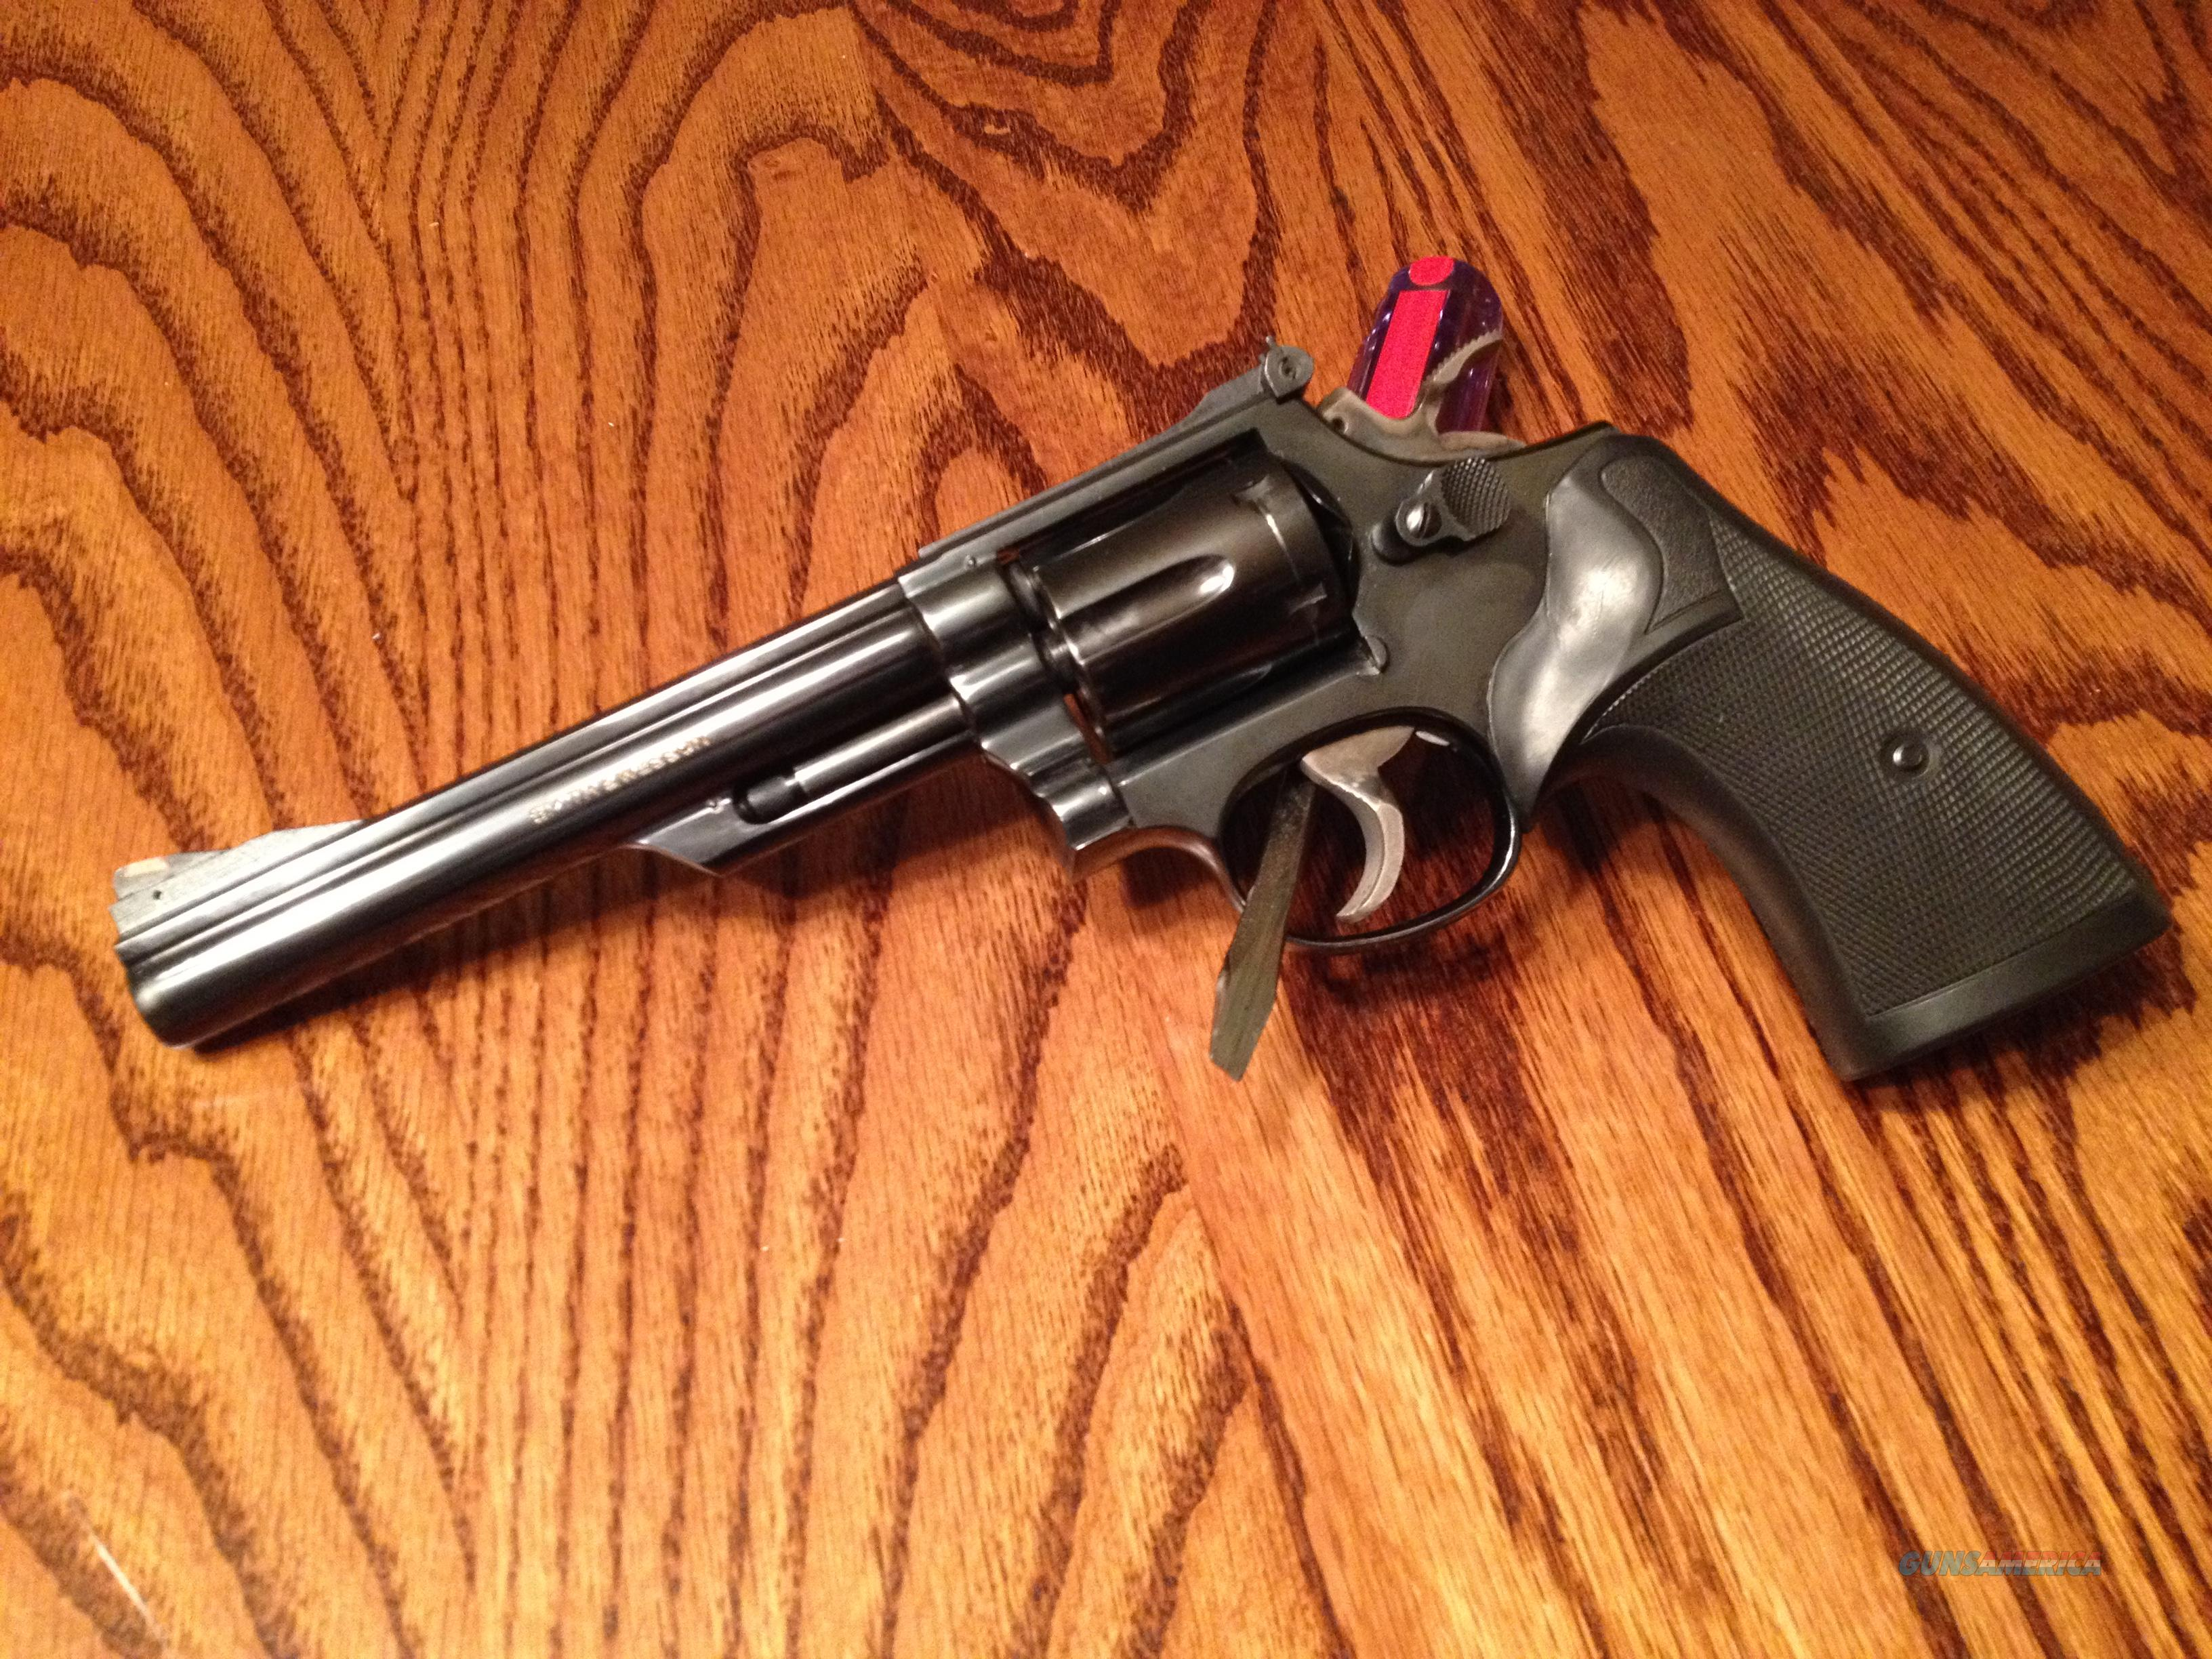 Smith Amp Wesson Model 19 4 6 Inch 357 Magnum For Sale